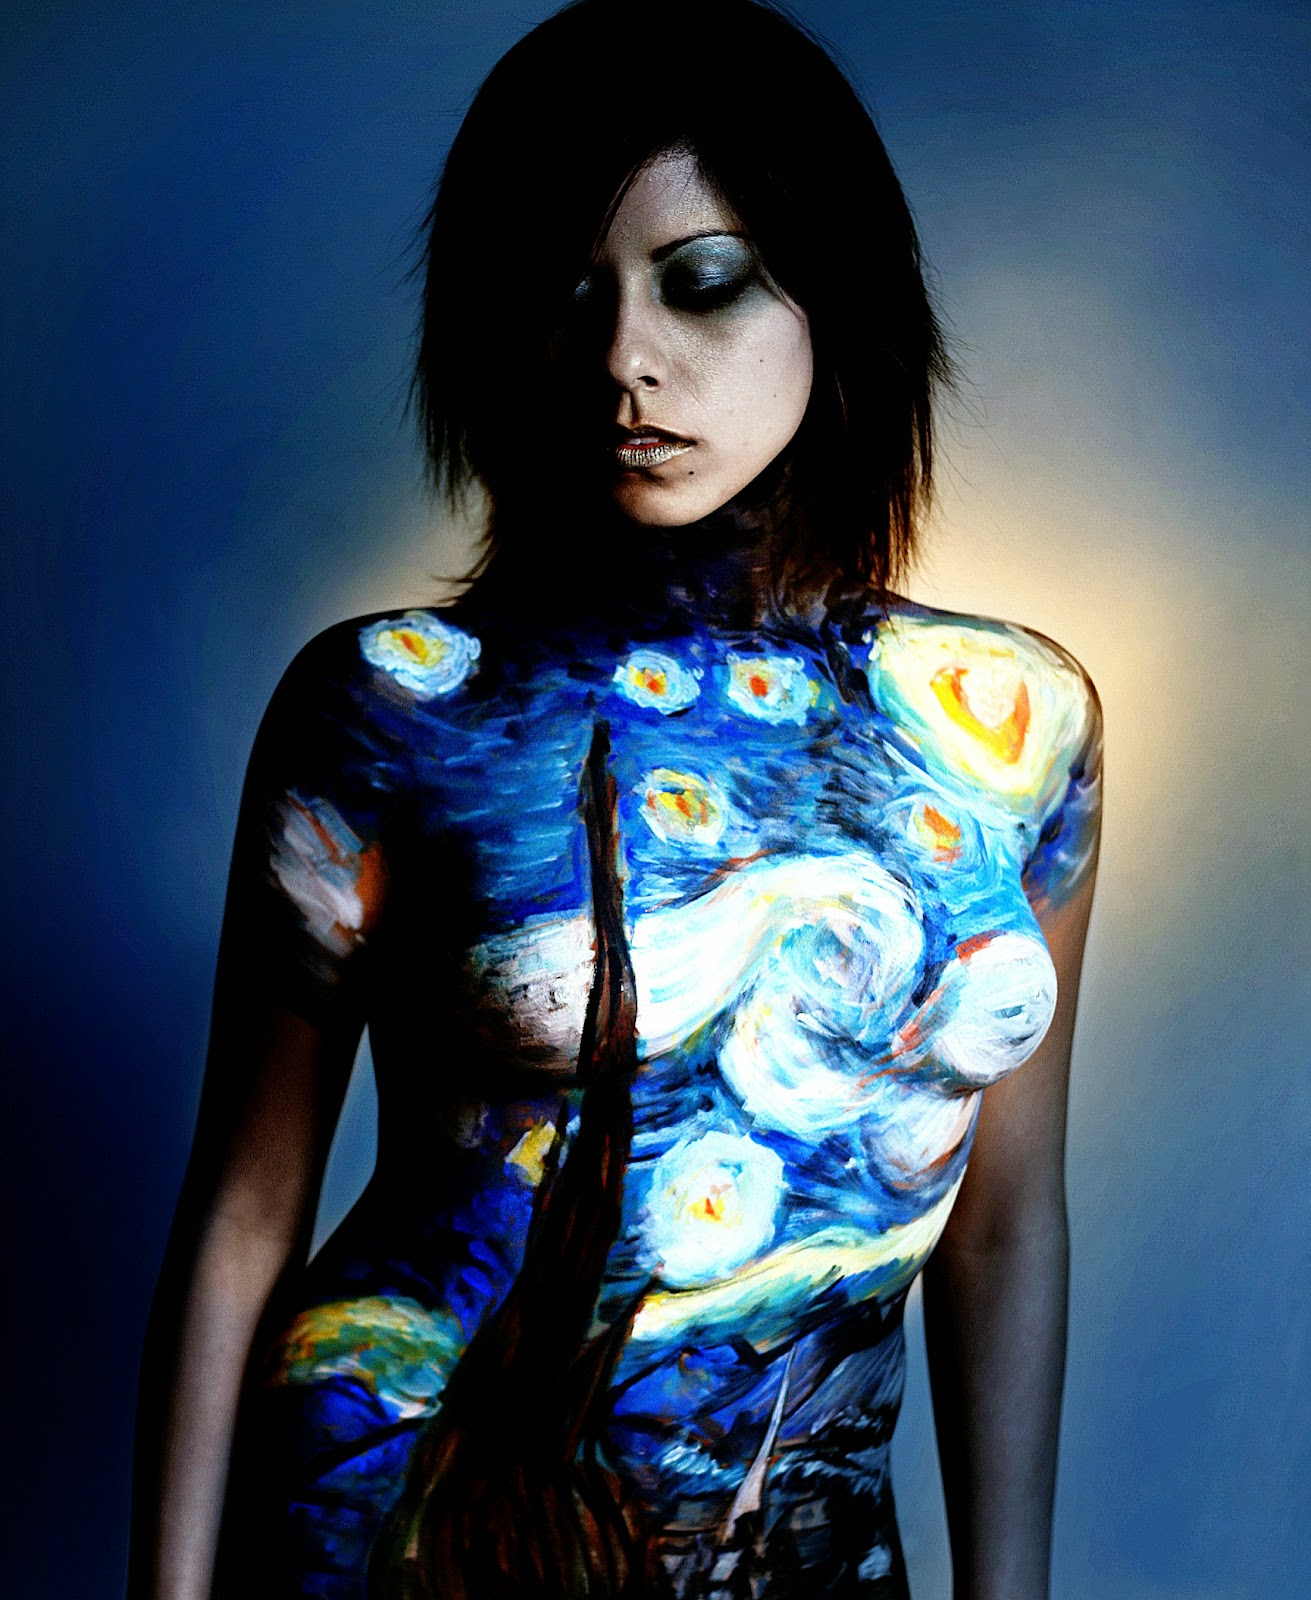 Body painting   Wikipedia the free encyclopedia